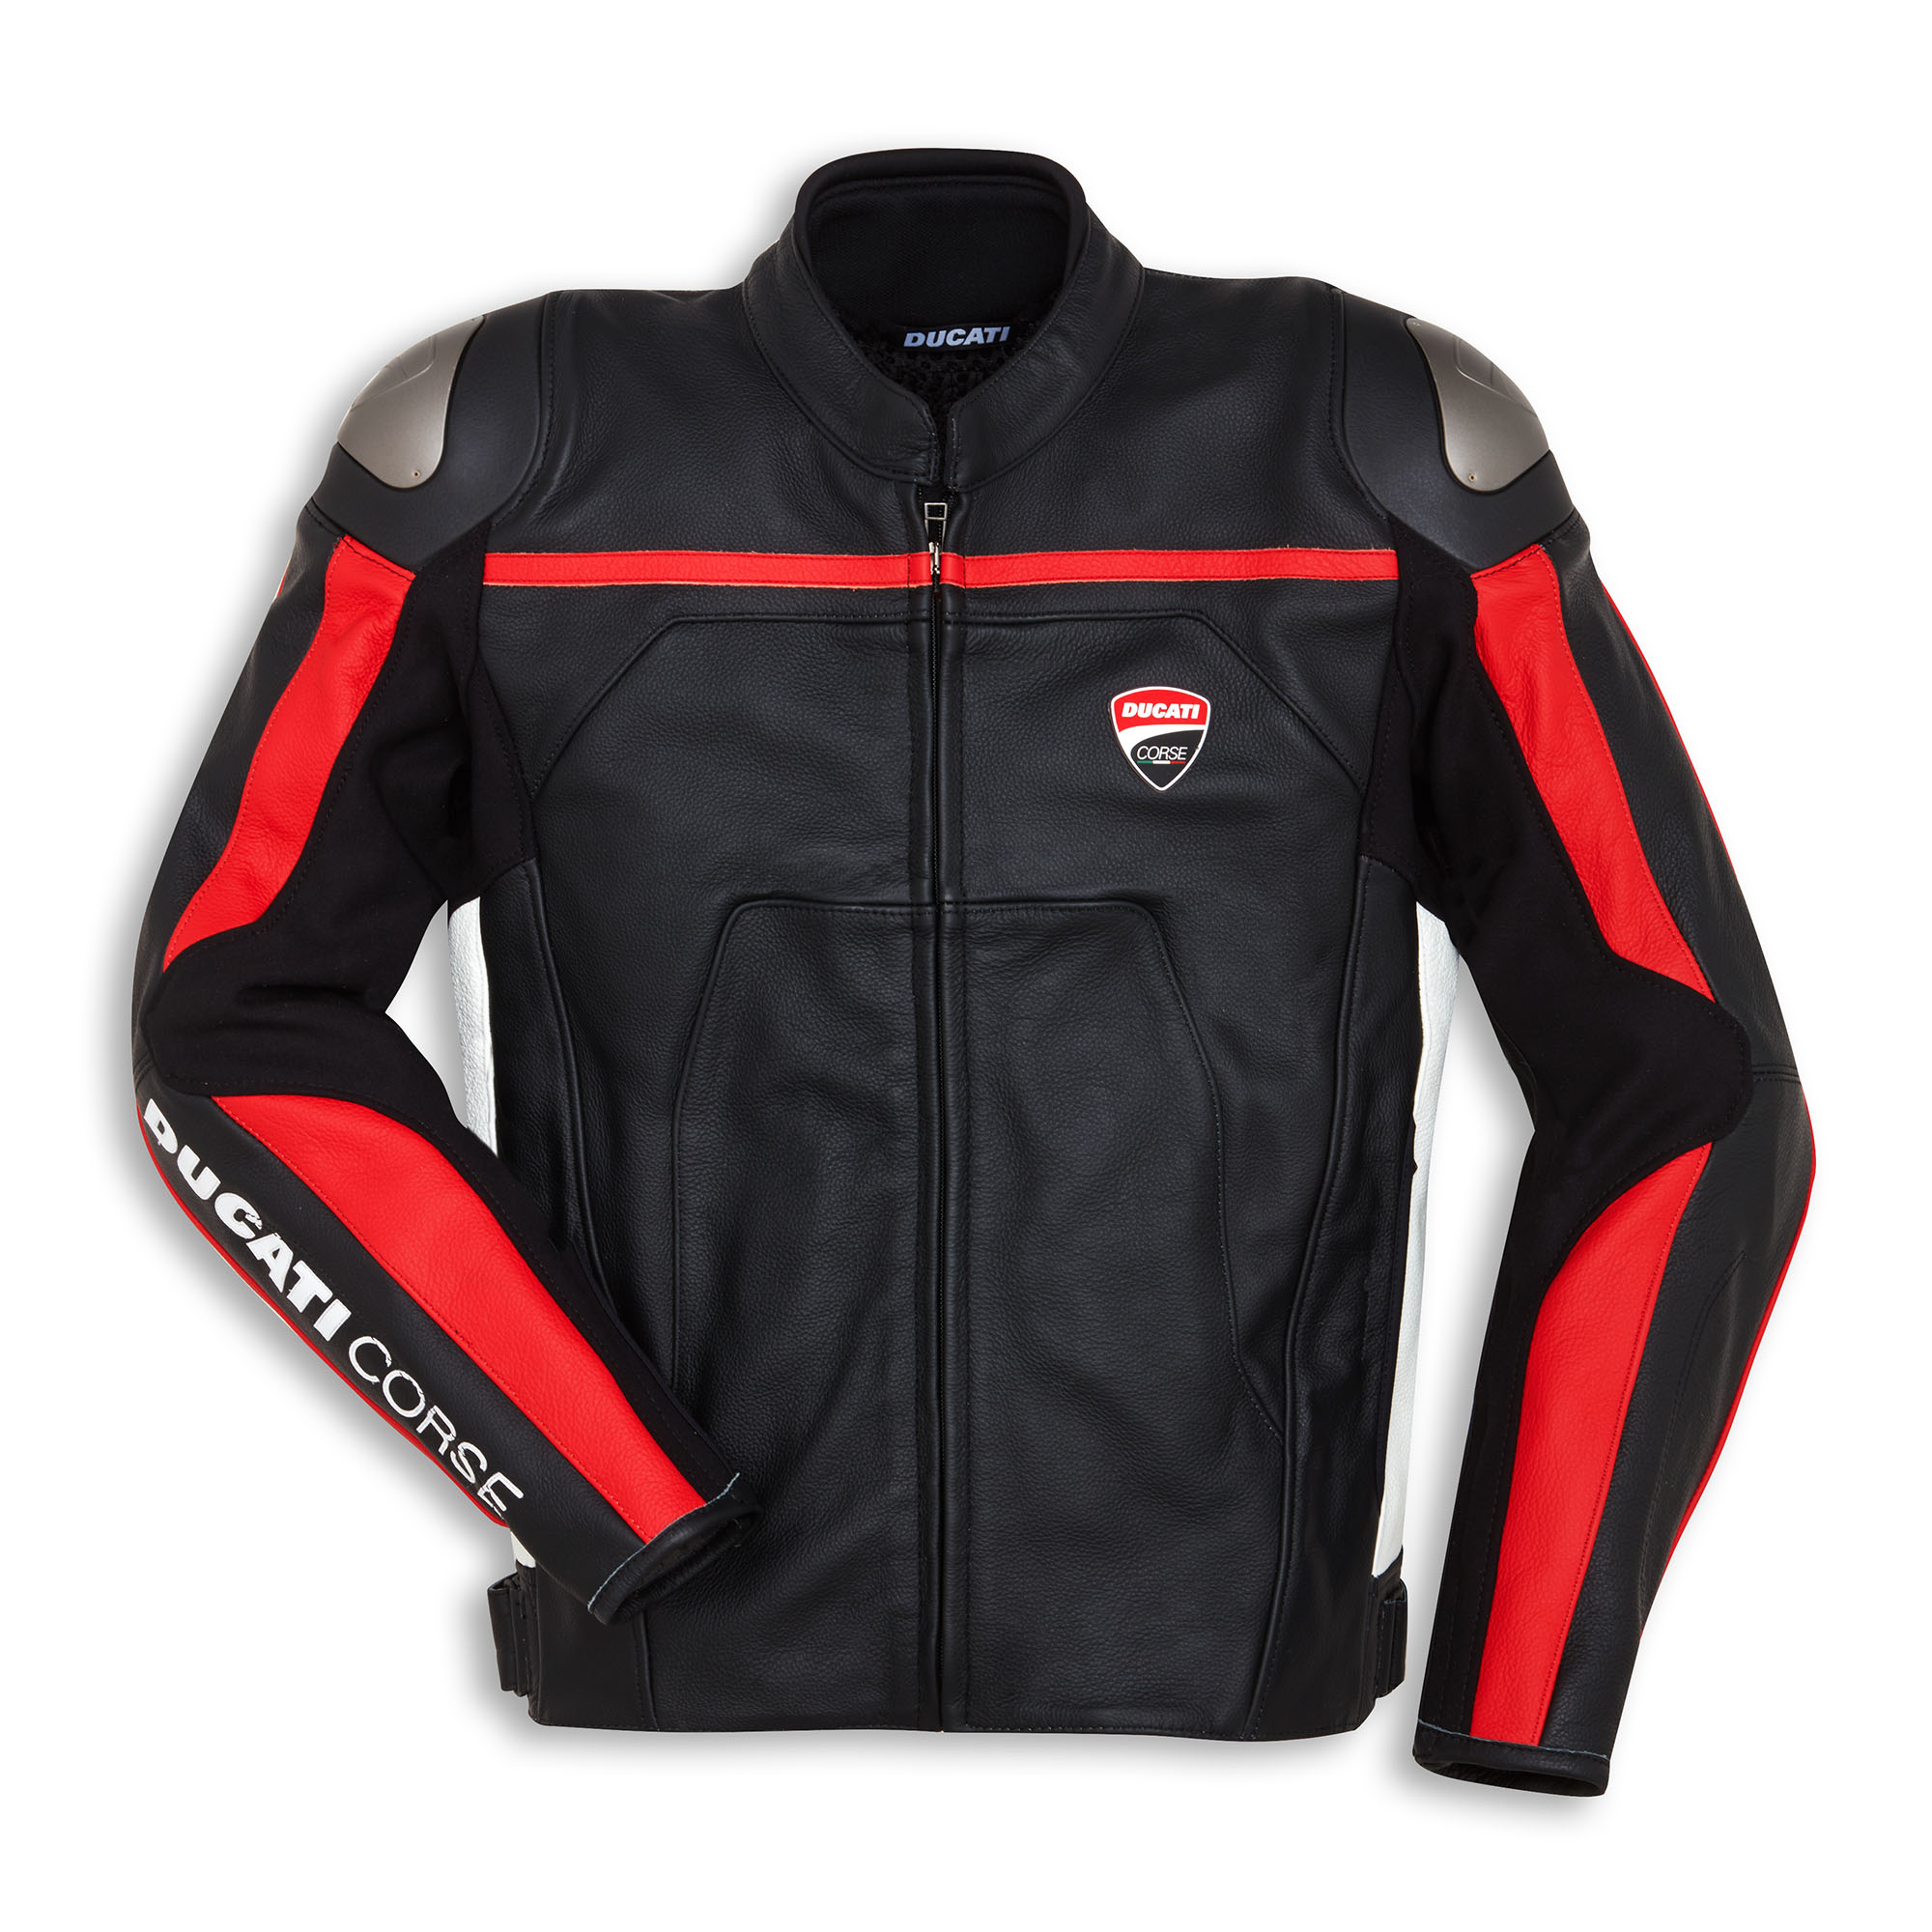 Ducati Corse C4 Leather jacket 981045448